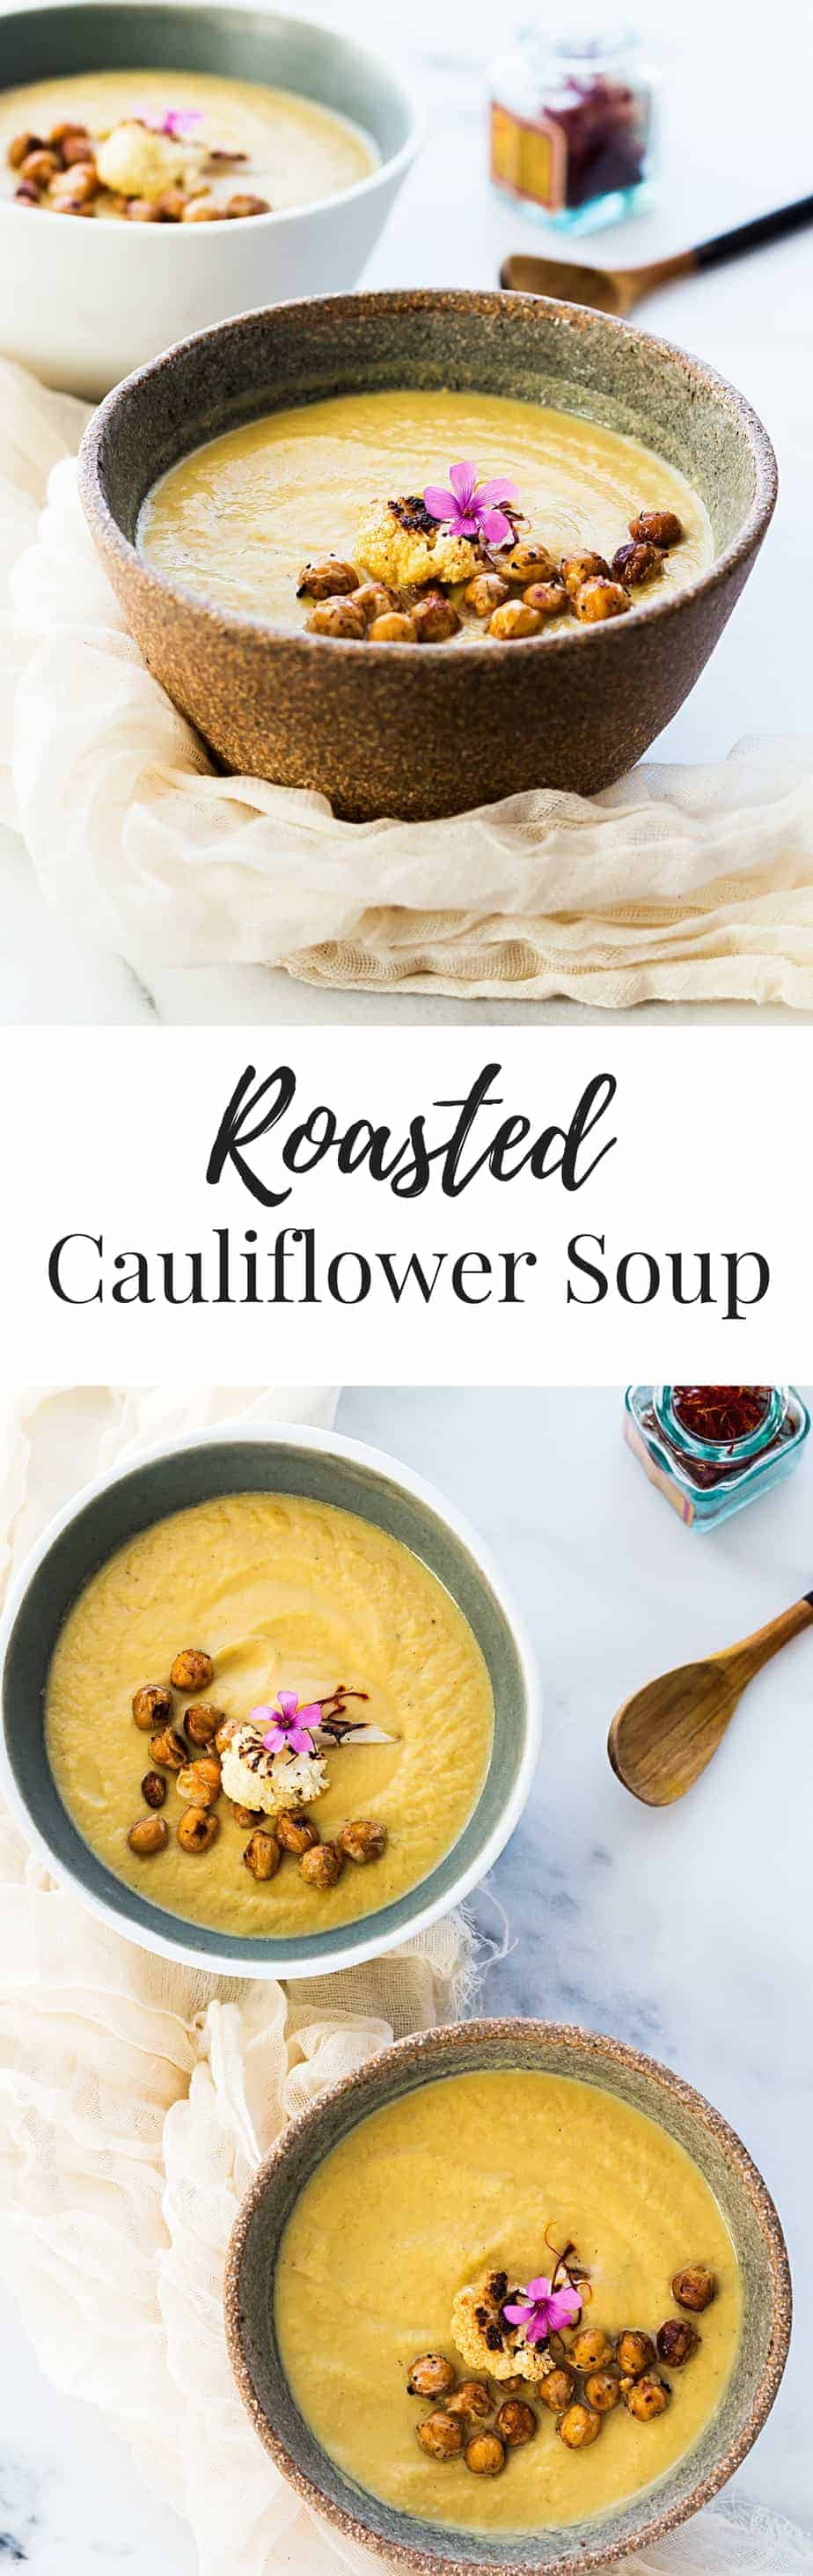 roasted cauliflower soup with saffron